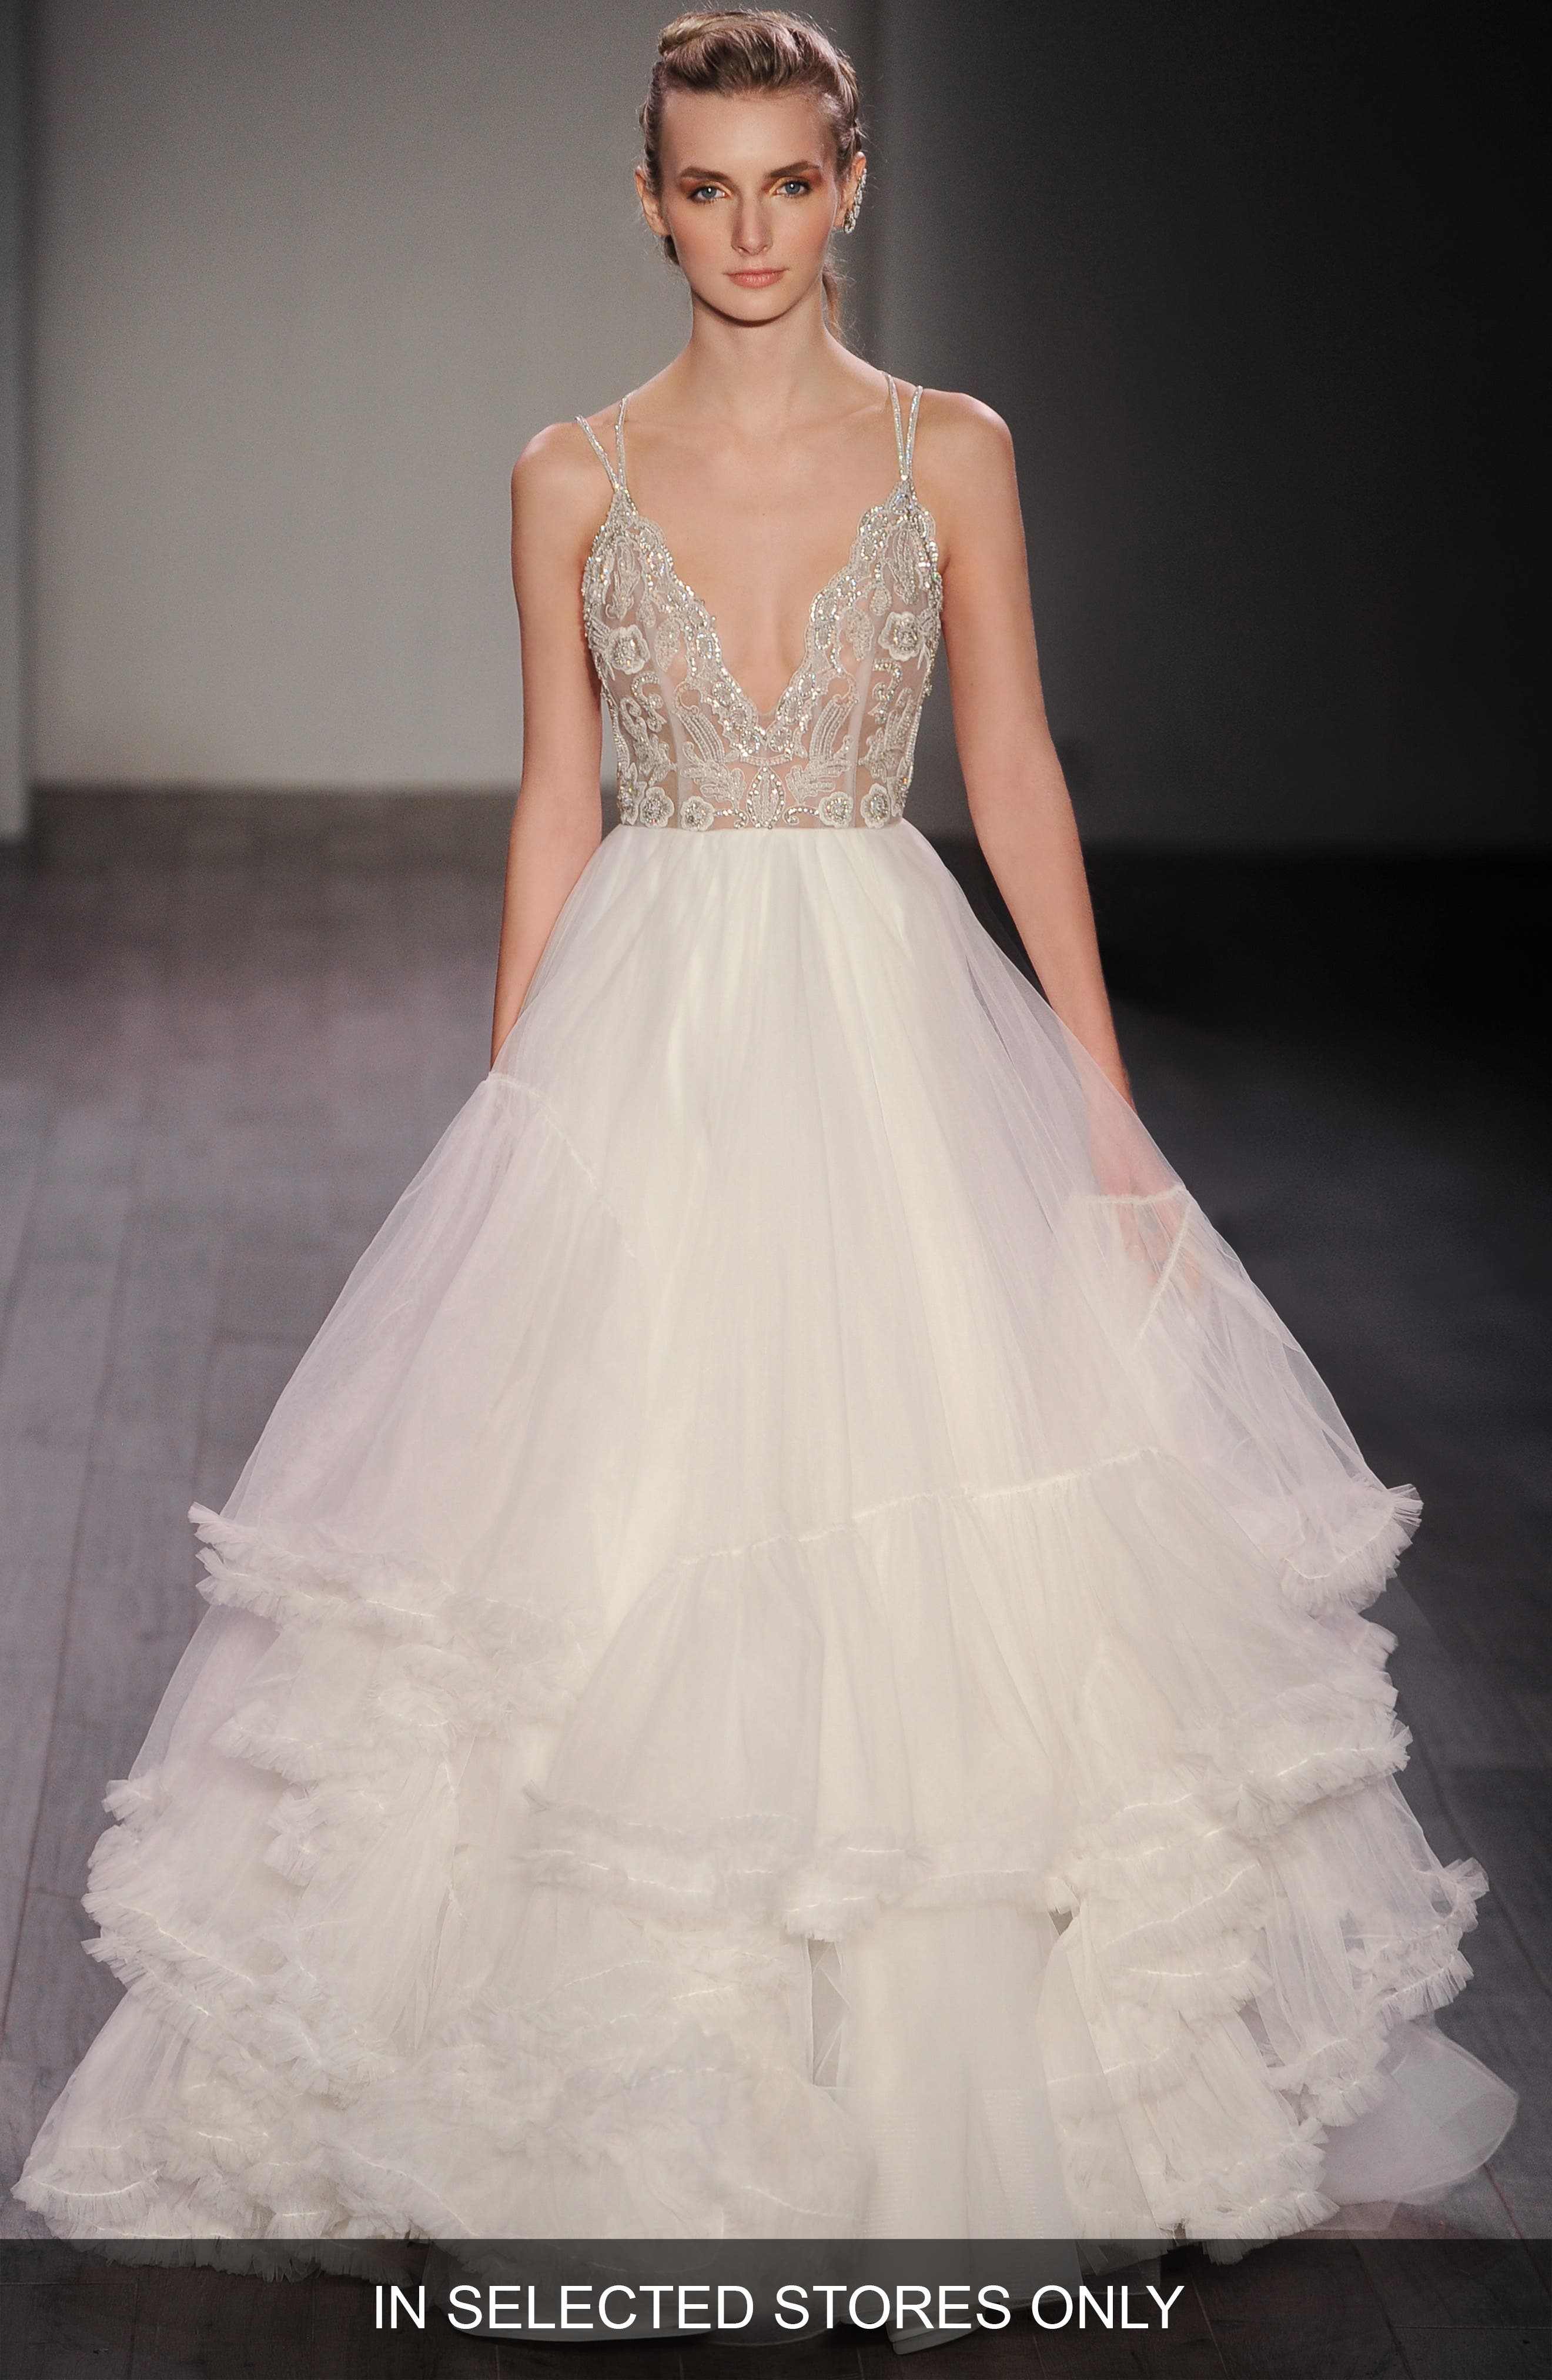 Hayley Paige 'Georgie' Embellished Bodice Tulle Ballgown (In Stores Only)